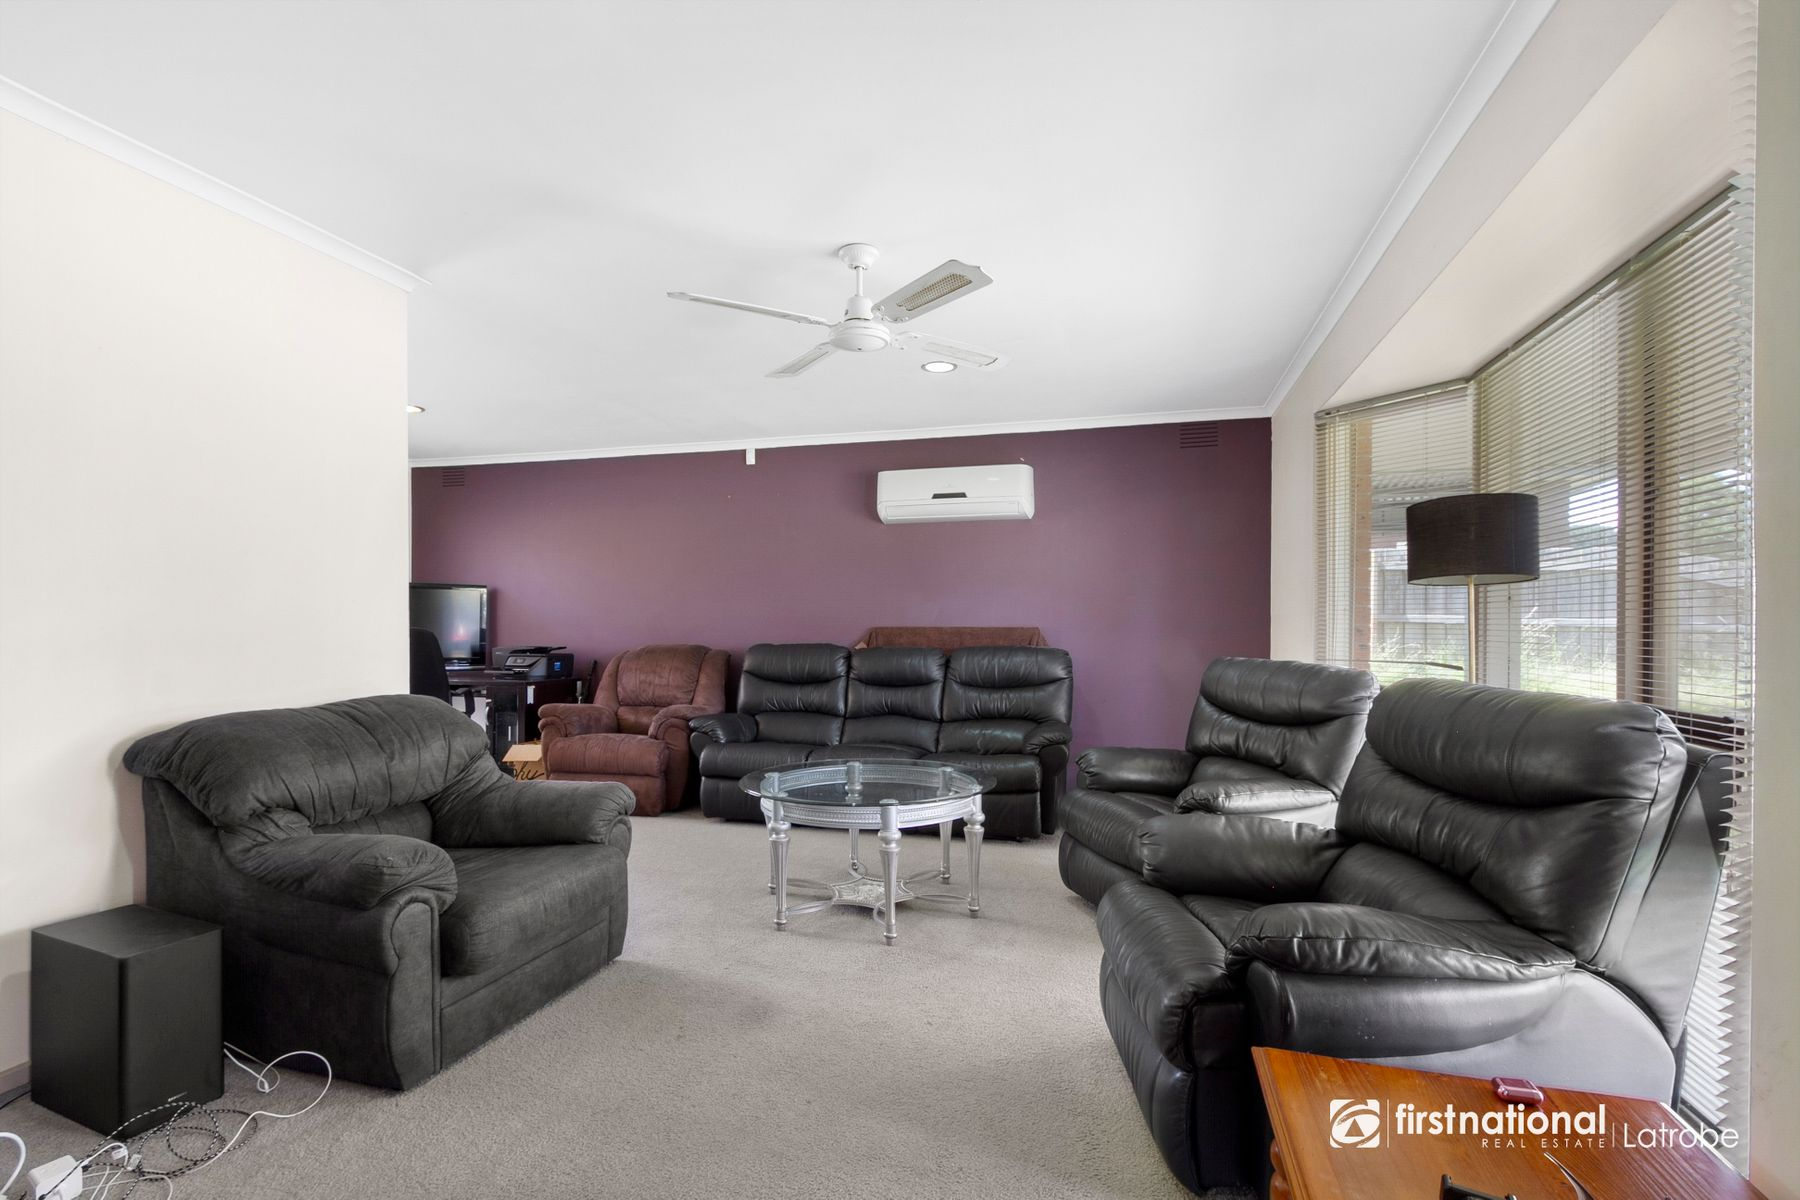 7 Cary Place, Traralgon, VIC 3844